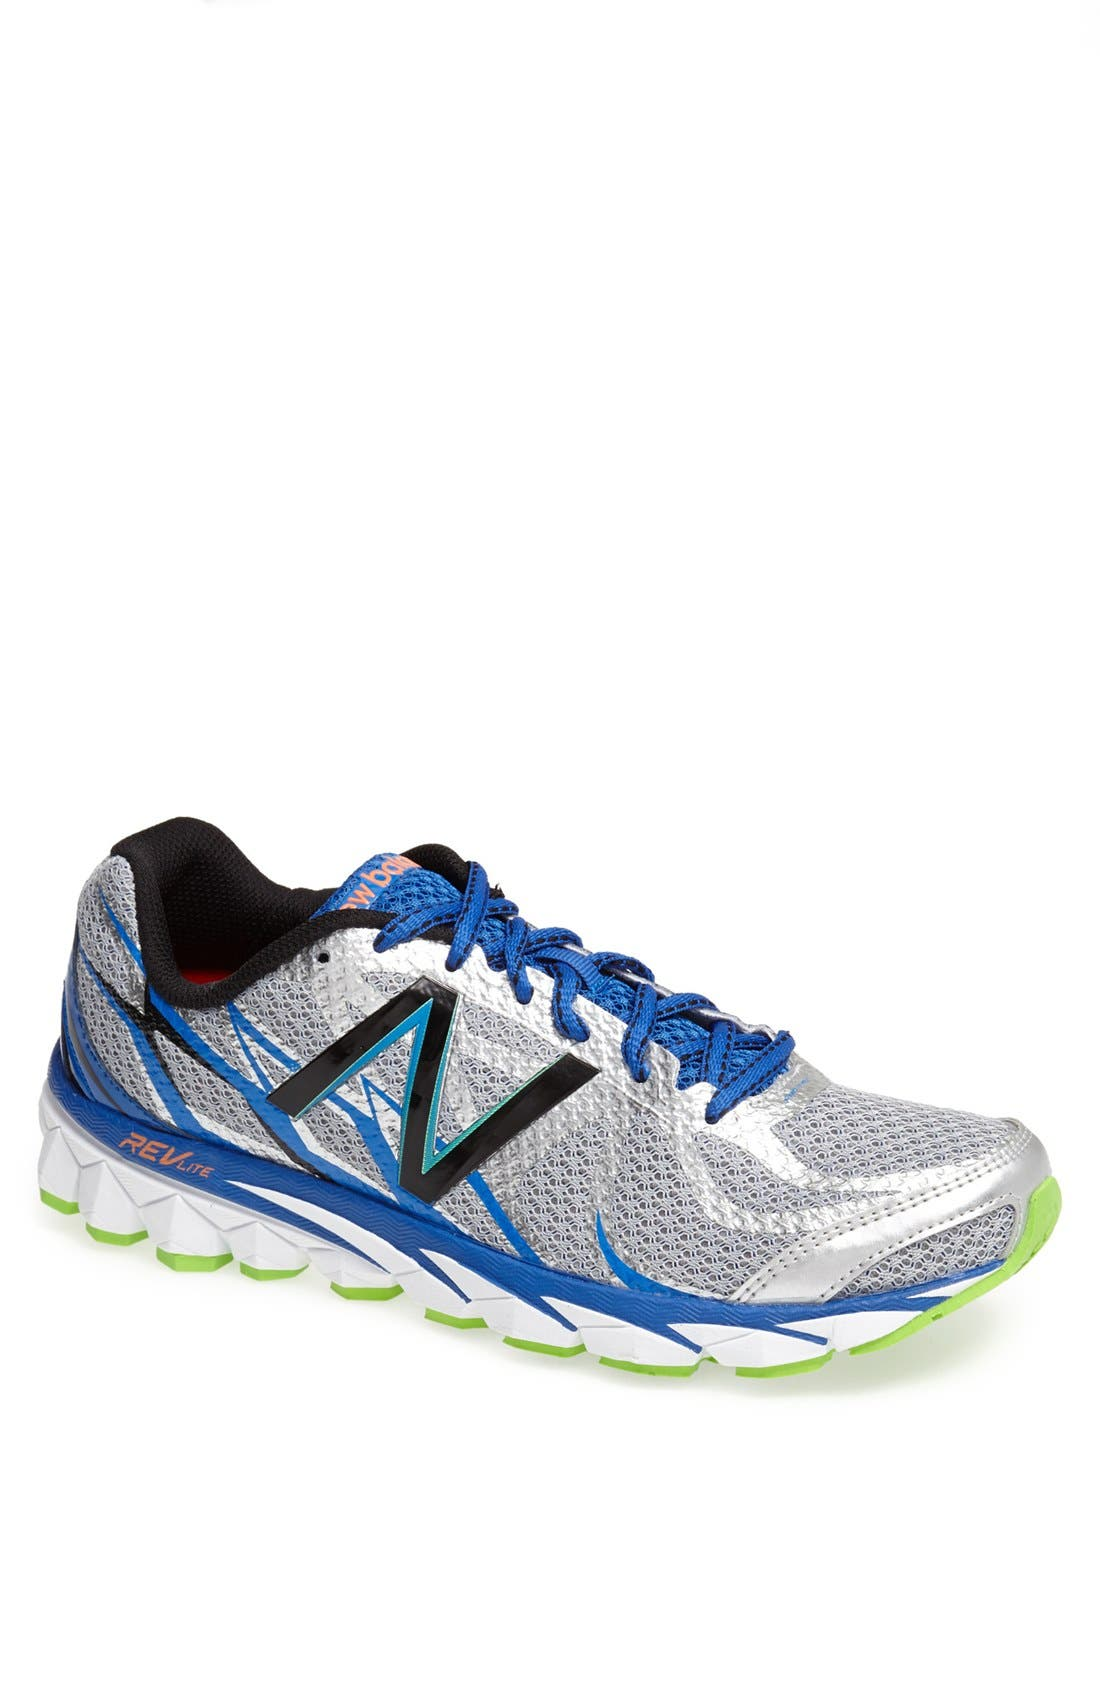 Main Image - New Balance '3190' Running Shoe (Men)